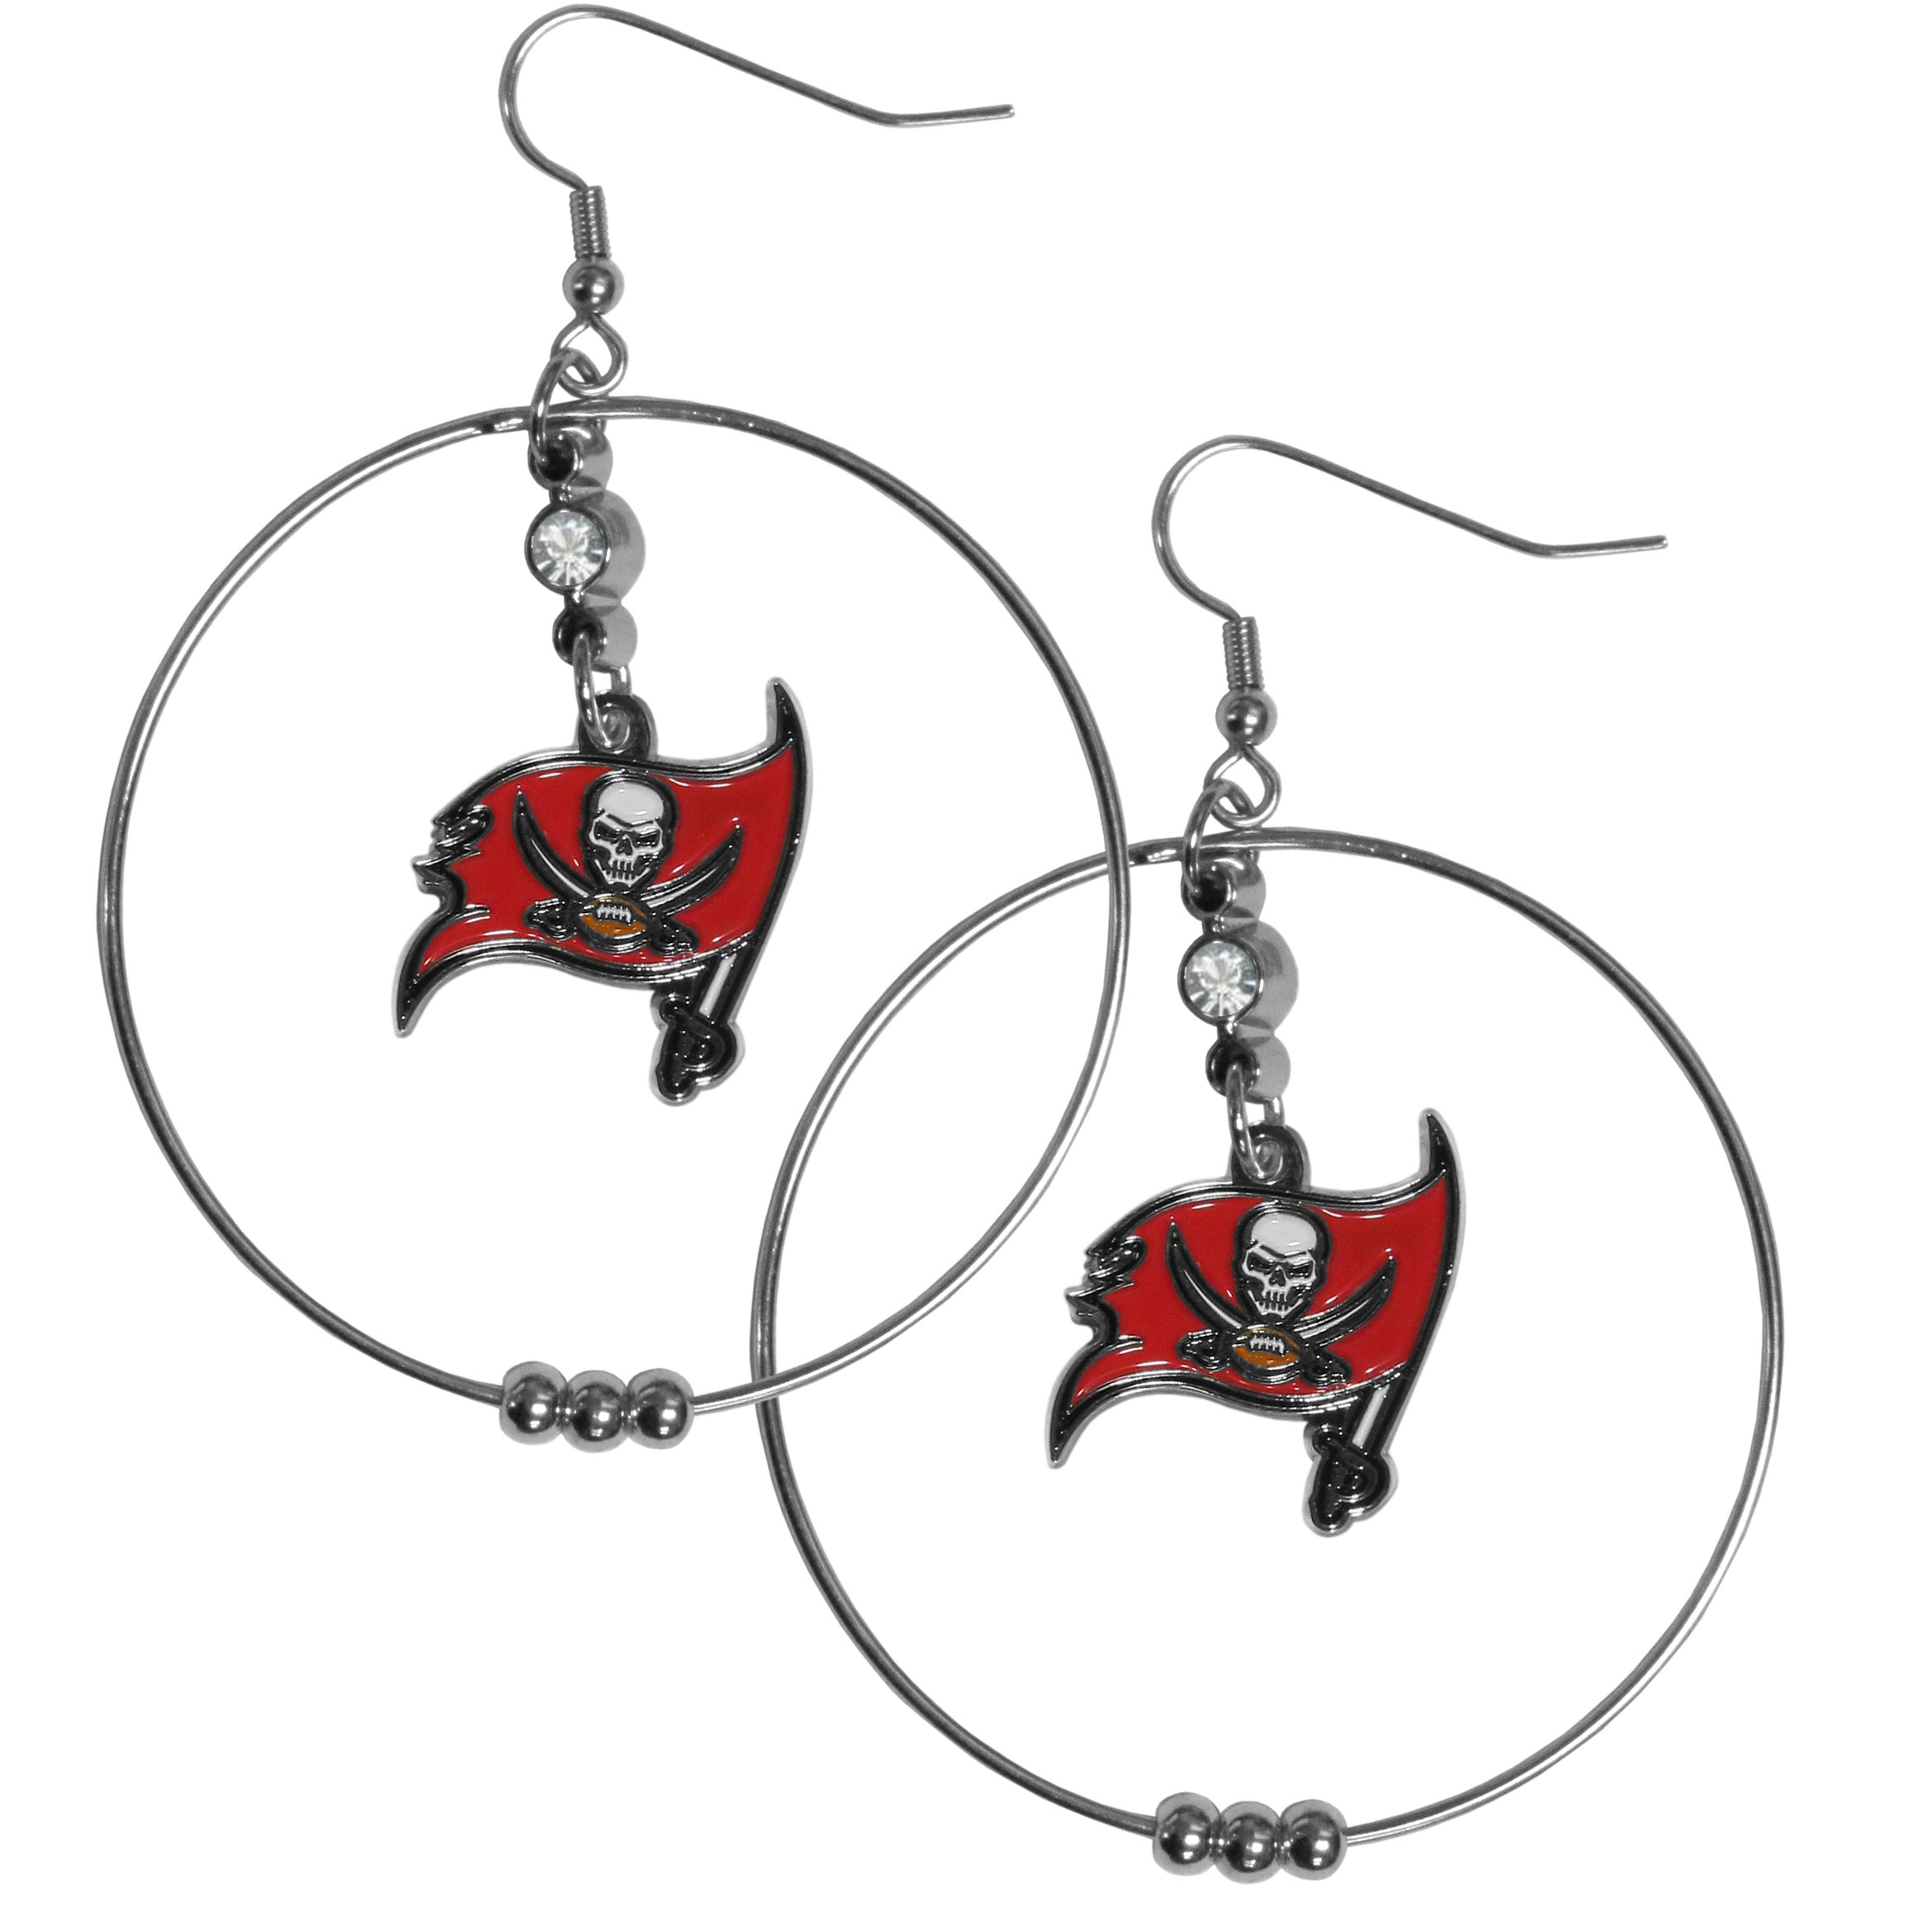 Tampa Bay Buccaneers 2 Inch Hoop Earrings - Our large hoop earrings have a fully cast and enameled Tampa Bay Buccaneers charm with enameled detail and a high polish nickel free chrome finish and rhinestone access. Hypoallergenic fishhook posts.